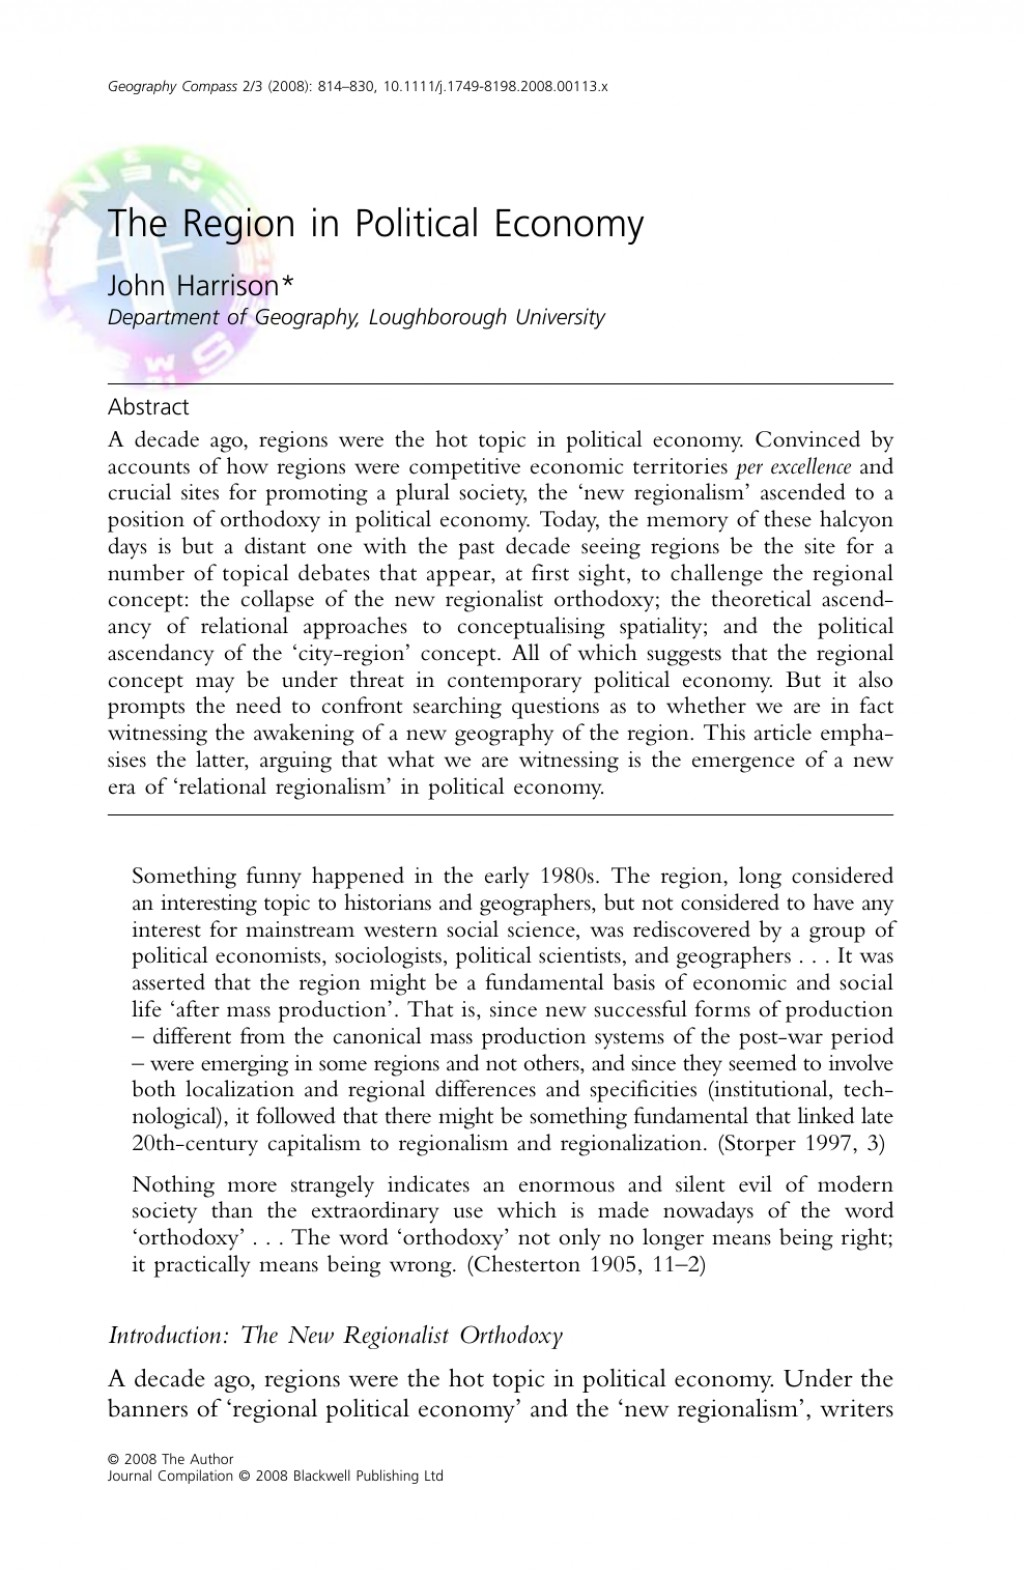 002 Research Paper Economic Geography Topics Wondrous Large